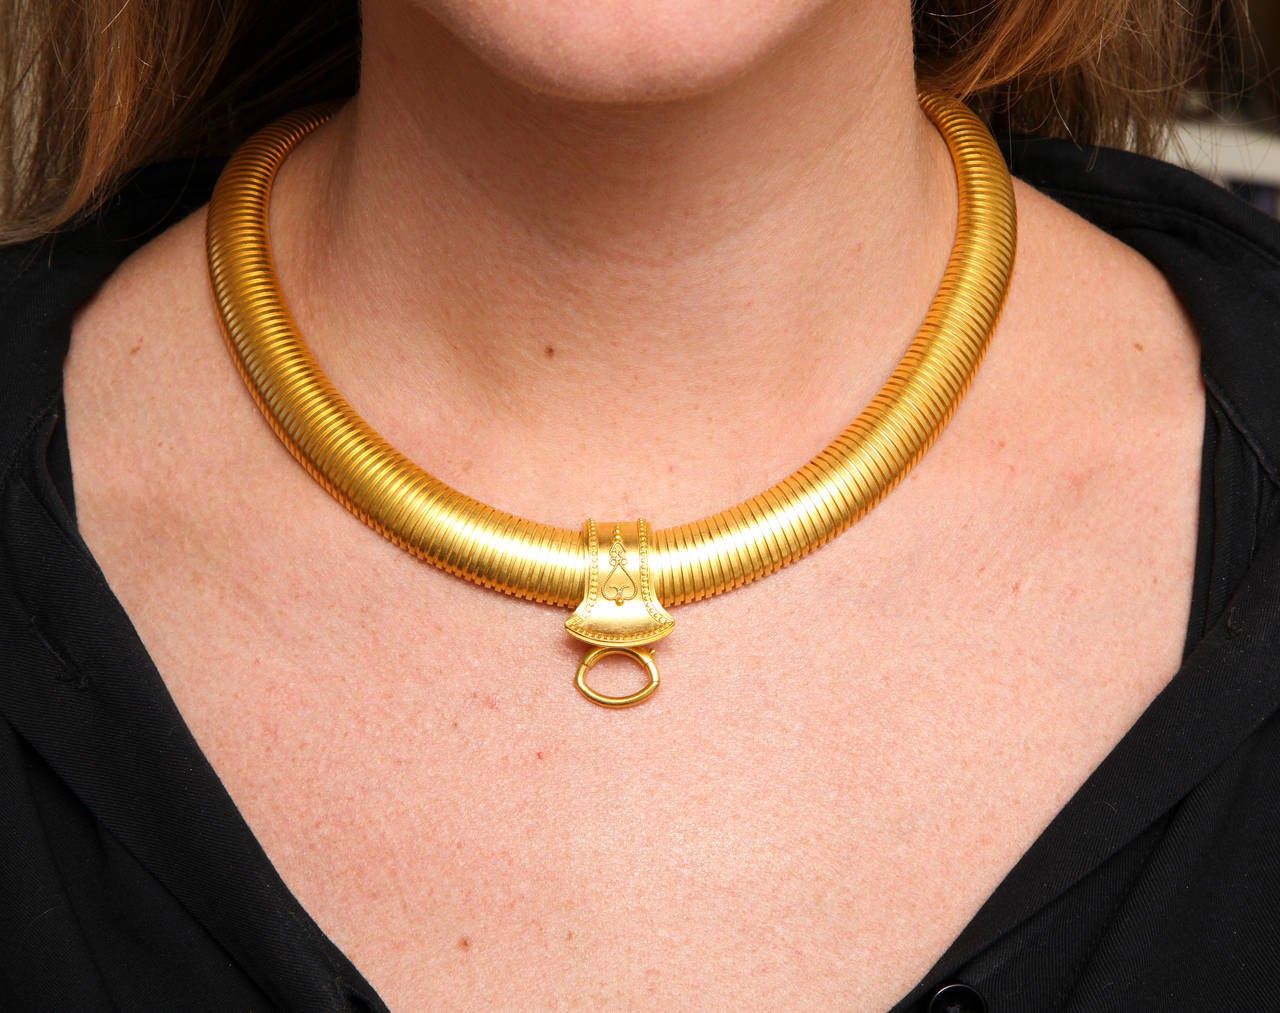 Wide Victorian Snake Chain Necklace with Slide In Excellent Condition For Sale In Stamford, CT